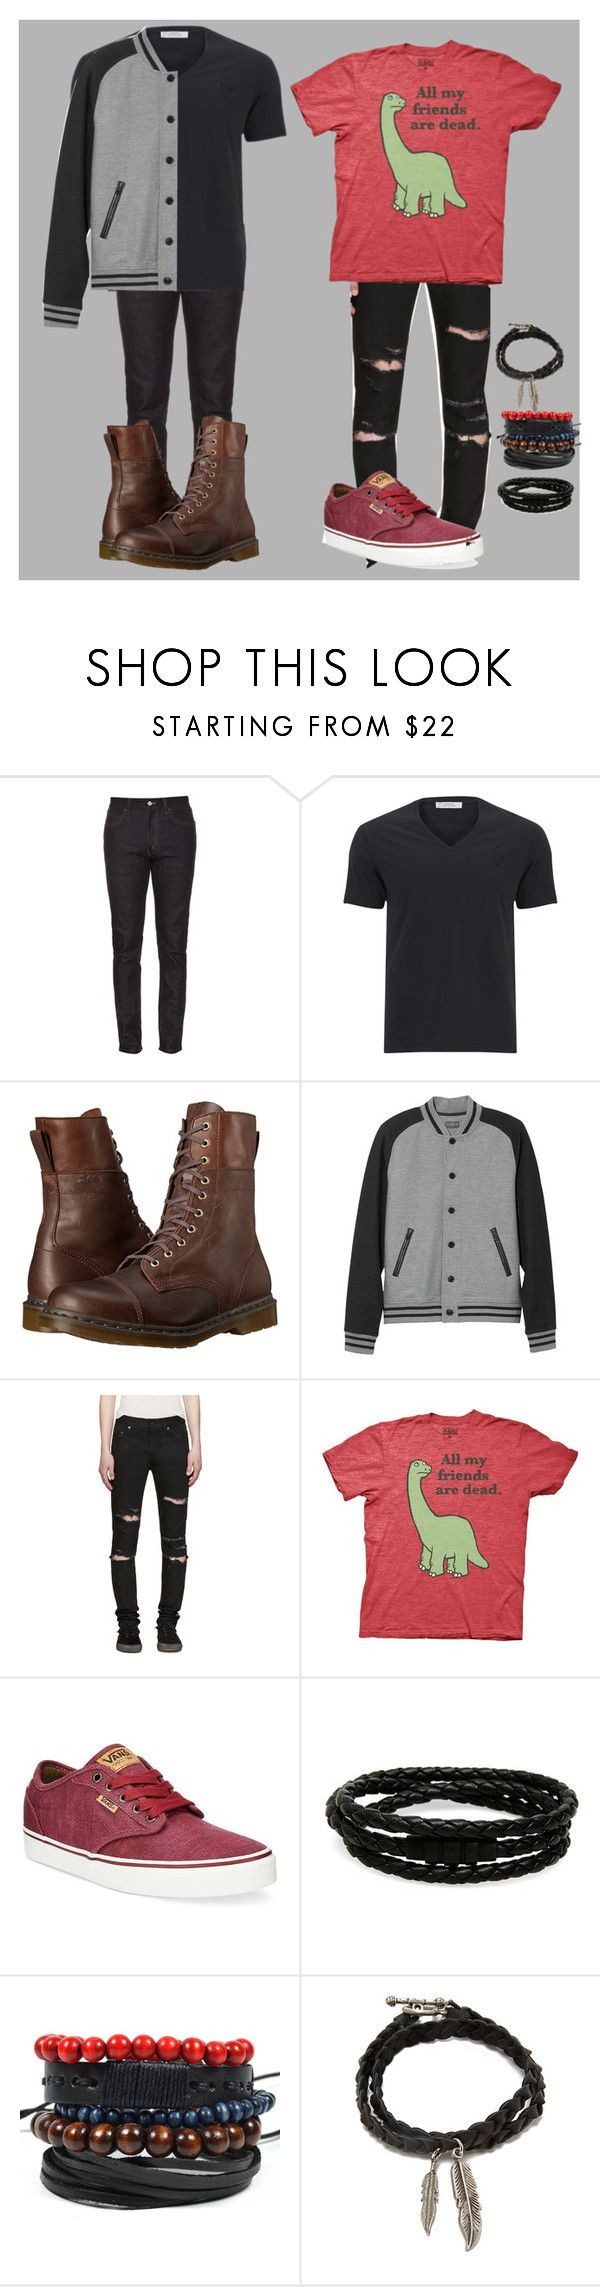 """Random IDK"" by xxanormalalienxx ❤ liked on Polyvore featuring Gucci, Versace, Dr. Martens, L.L.Bean, Yves Saint Laurent, Vans, Porsche Design, Forever 21, men's fashion and menswear"